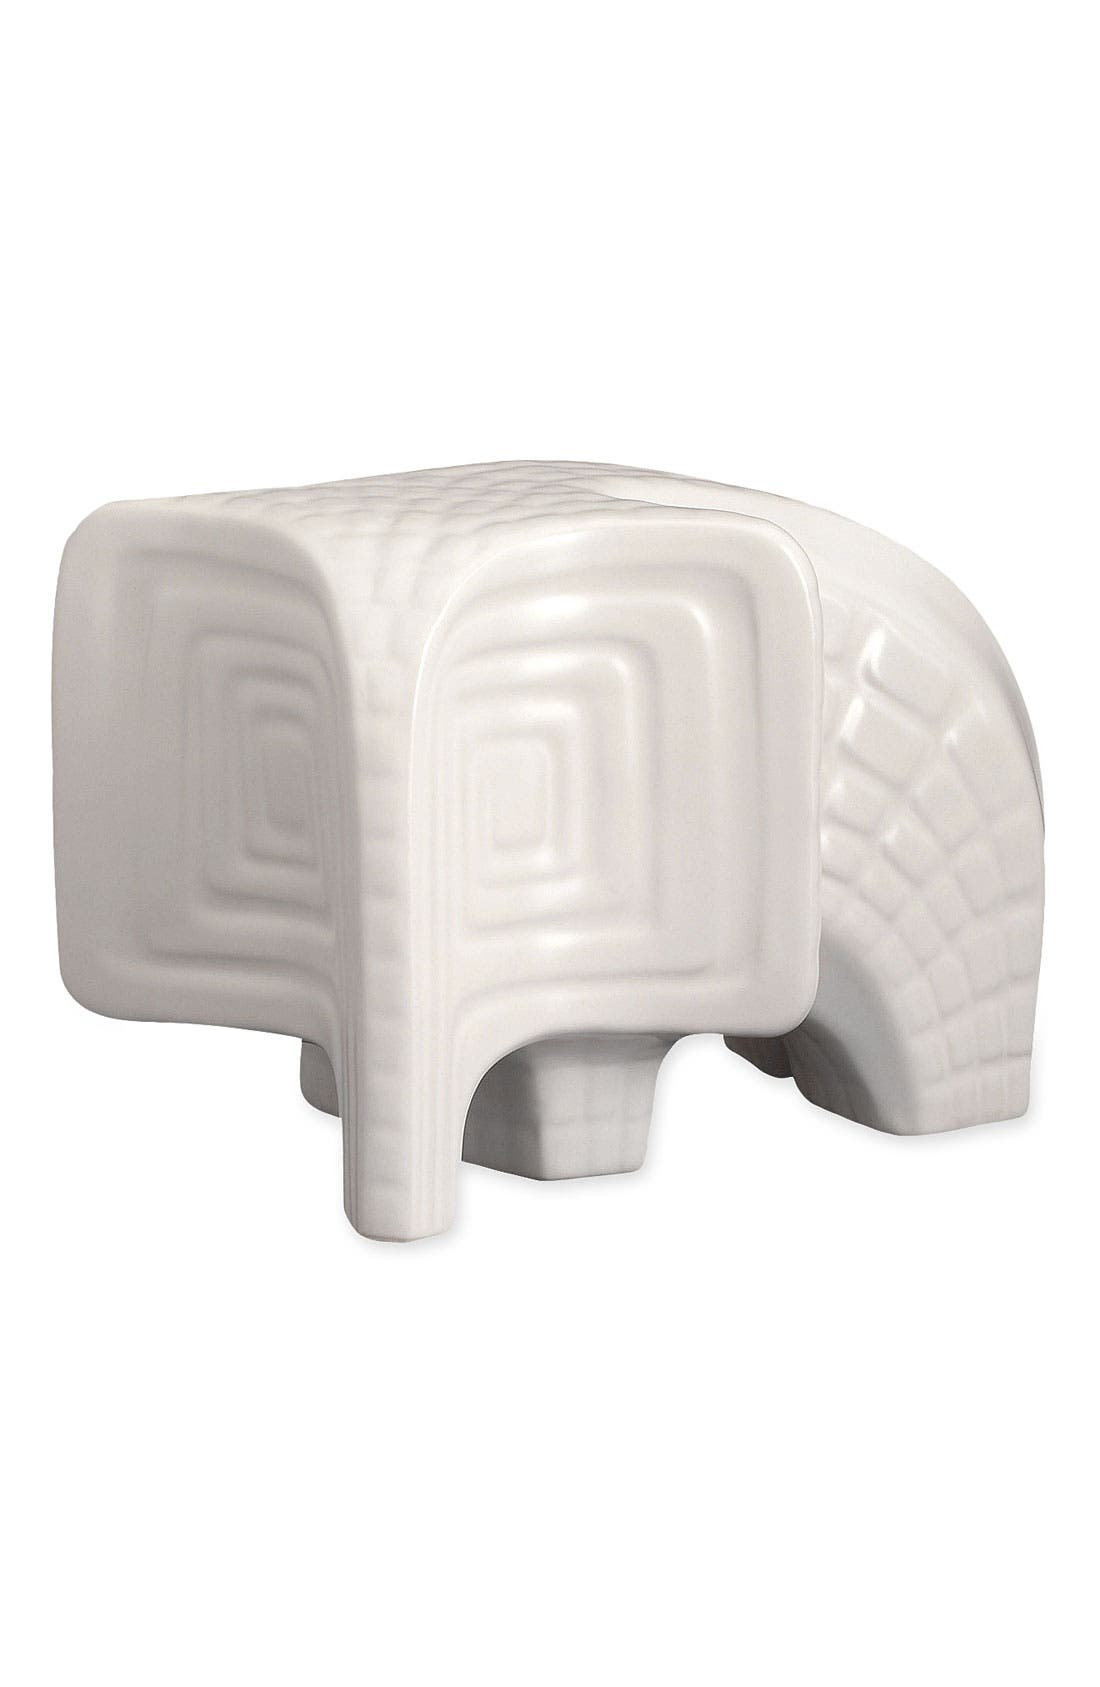 Alternate Image 1 Selected - Jonathan Adler Ceramic Elephant